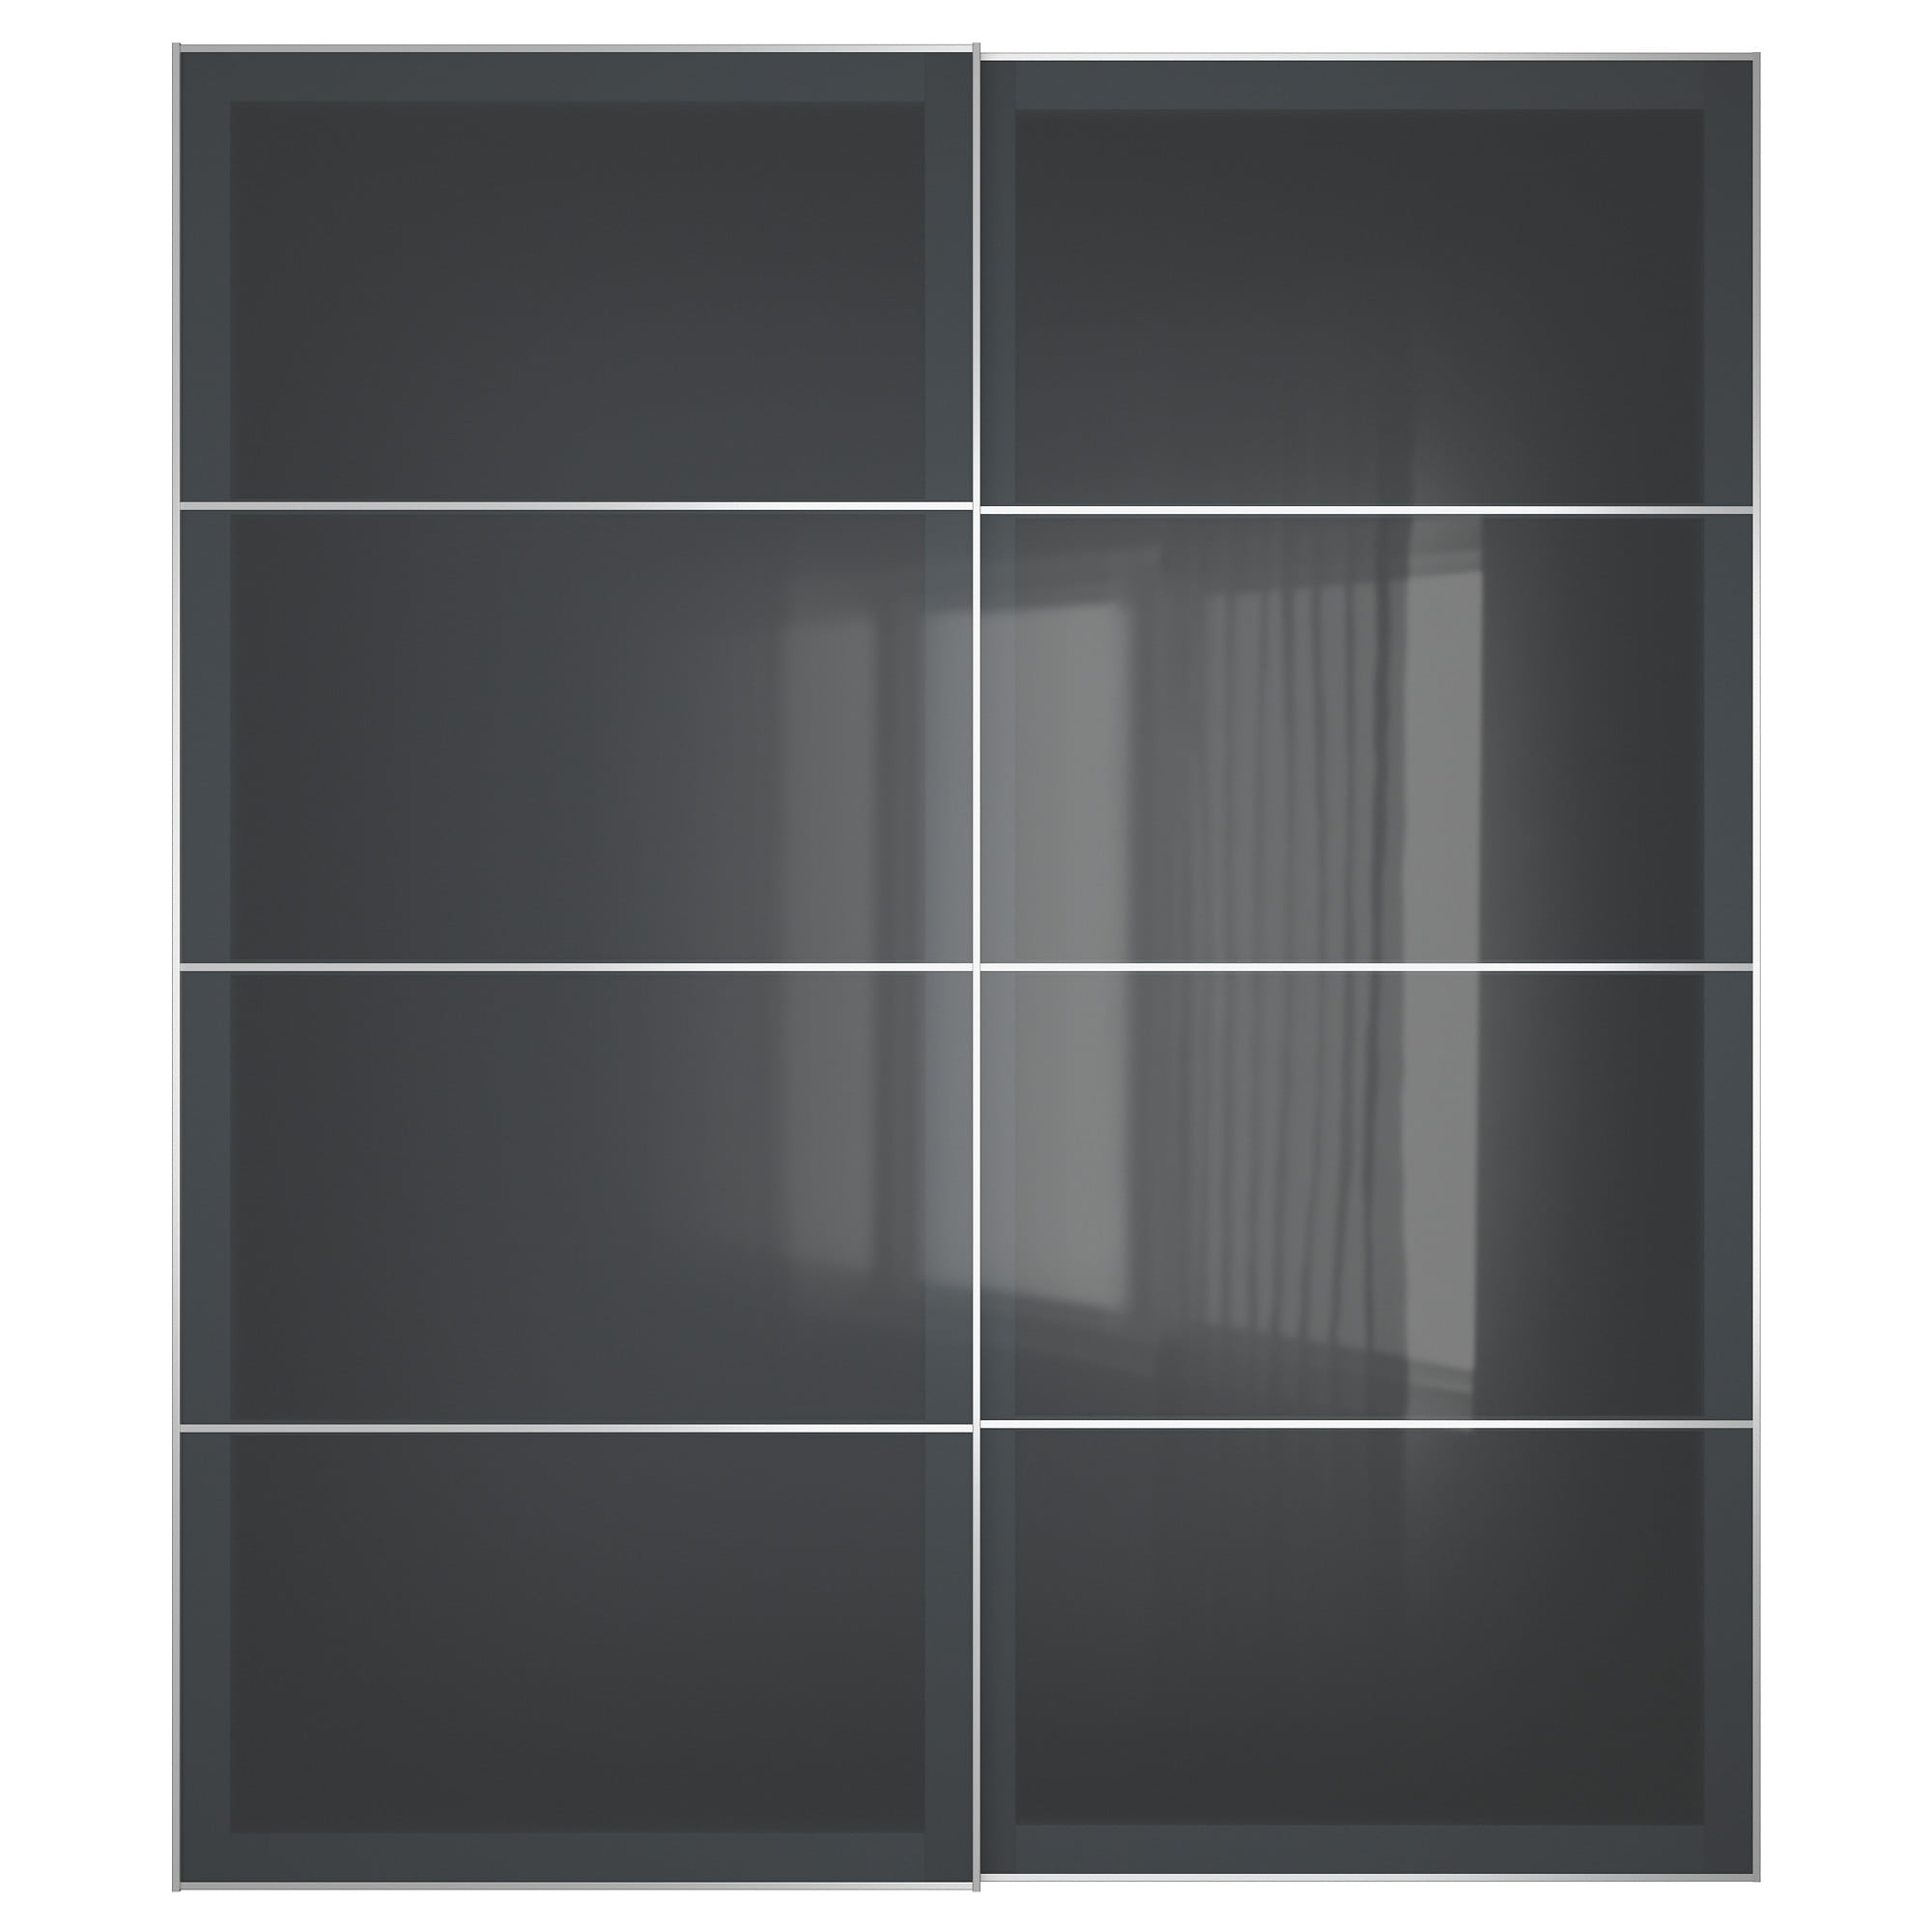 3 panel sliding closet doors - Uggdal Pair Of Sliding Doors Gray Glass Width 78 3 4 Built